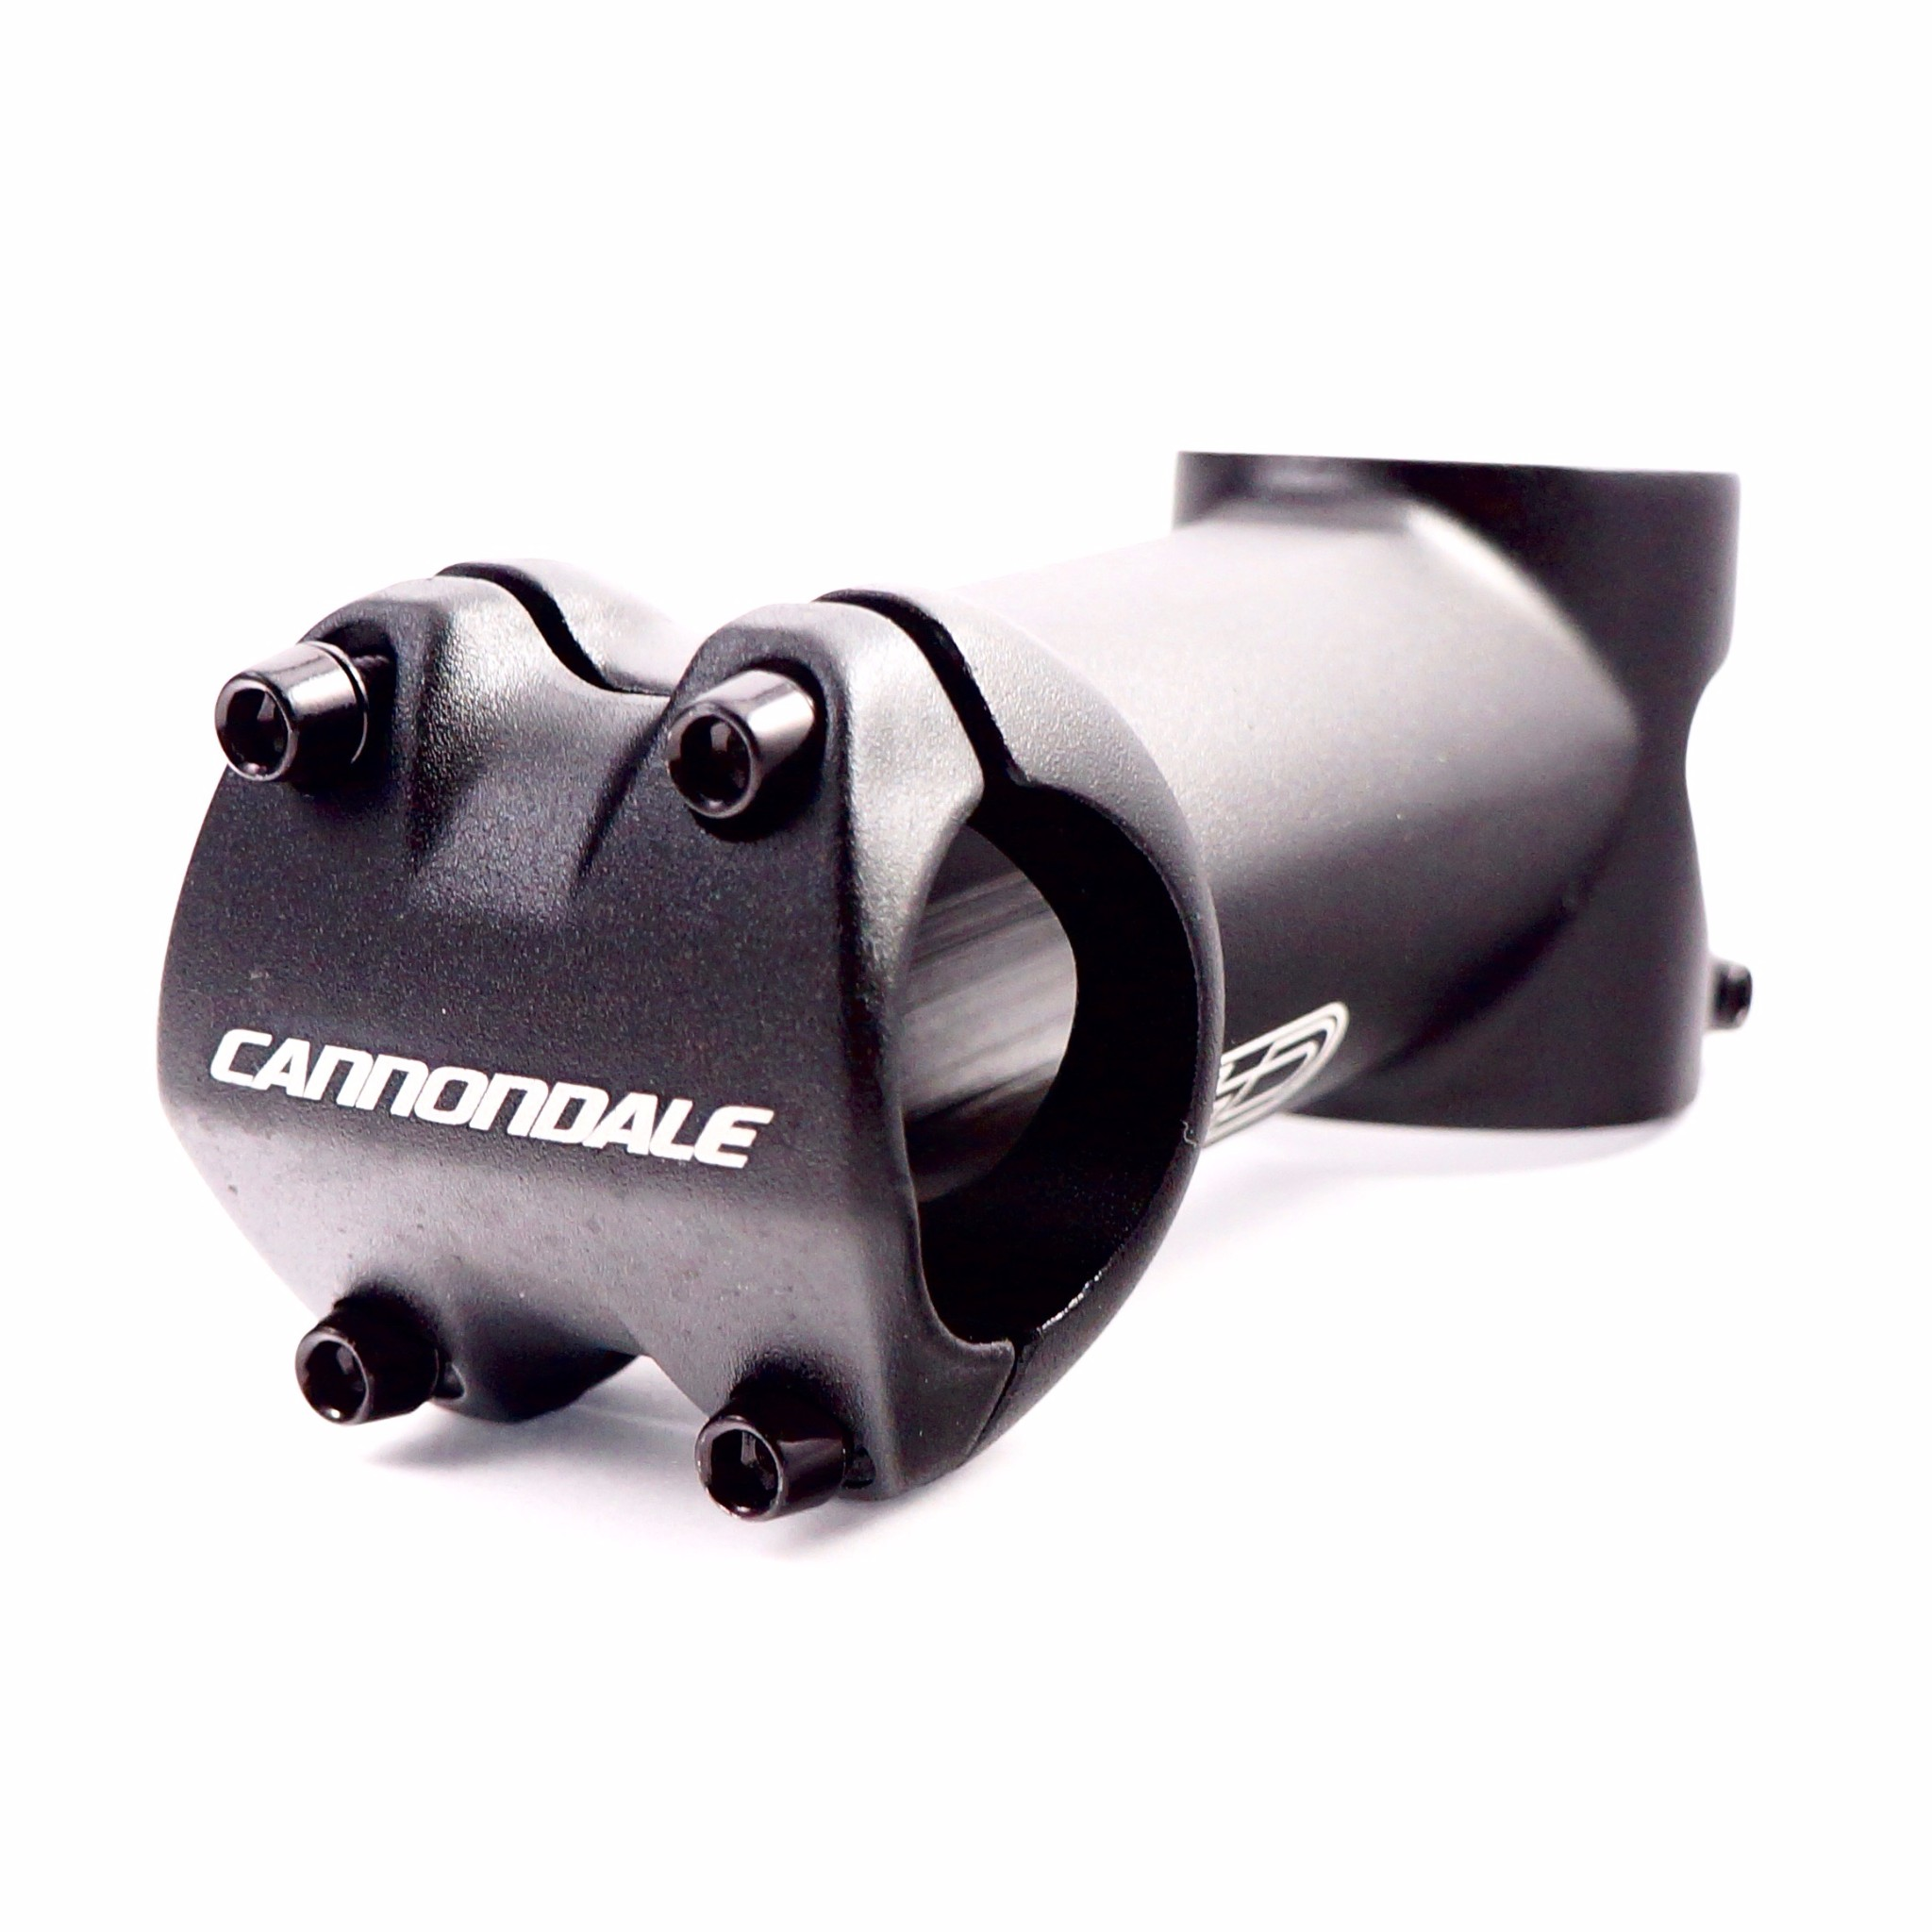 "New Cannondale C4 1-1//2/"" x 31.8mm Stem 7deg  Aluminum MTB Bike Stem 100mm"